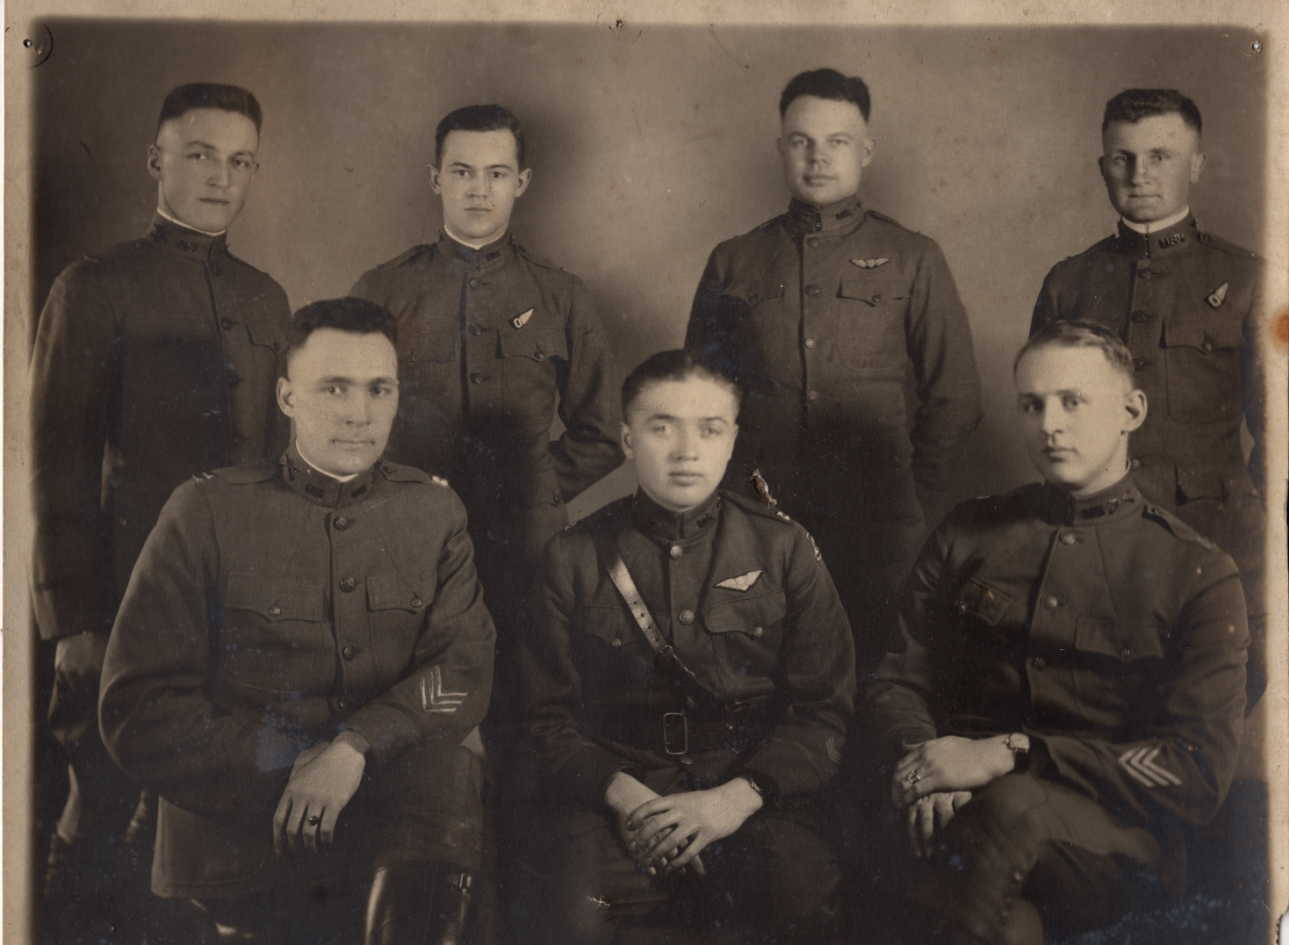 A photo of seven men in uniform, four standing and three seated.